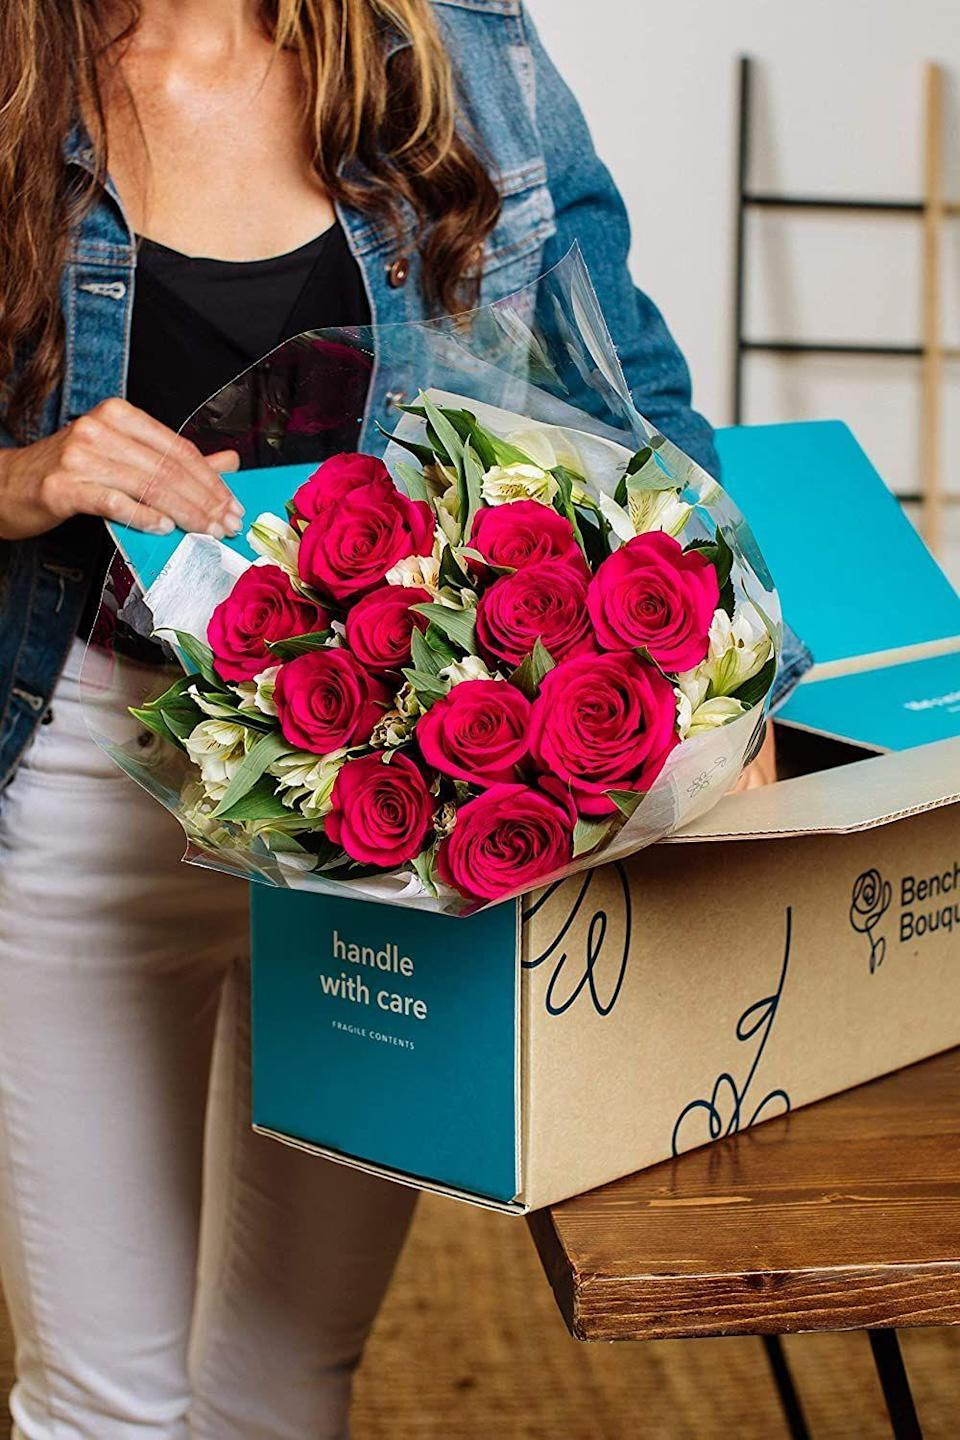 """<p><strong>Benchmark Bouquets</strong></p><p>amazon.com</p><p><strong>$41.61</strong></p><p><a href=""""https://www.amazon.com/dp/B00E3IXY62?tag=syn-yahoo-20&ascsubtag=%5Bartid%7C10055.g.26977276%5Bsrc%7Cyahoo-us"""" rel=""""nofollow noopener"""" target=""""_blank"""" data-ylk=""""slk:Shop Now"""" class=""""link rapid-noclick-resp"""">Shop Now</a></p><p>Yep, you can get flowers from the same place you get your electronics, cleaning supplies, and workout leggings. <strong>Amazon delivers fresh flowers <a href=""""https://www.amazon.com/stores/page/063FC885-5DF2-4D86-BE30-CC8462387F15?tag=syn-yahoo-20&ascsubtag=%5Bartid%7C10055.g.26977276%5Bsrc%7Cyahoo-us"""" rel=""""nofollow noopener"""" target=""""_blank"""" data-ylk=""""slk:from dozens of brands"""" class=""""link rapid-noclick-resp"""">from dozens of brands</a> to your door </strong>— and if you're a Prime member, you can get 'em in two days with free shipping. </p>"""